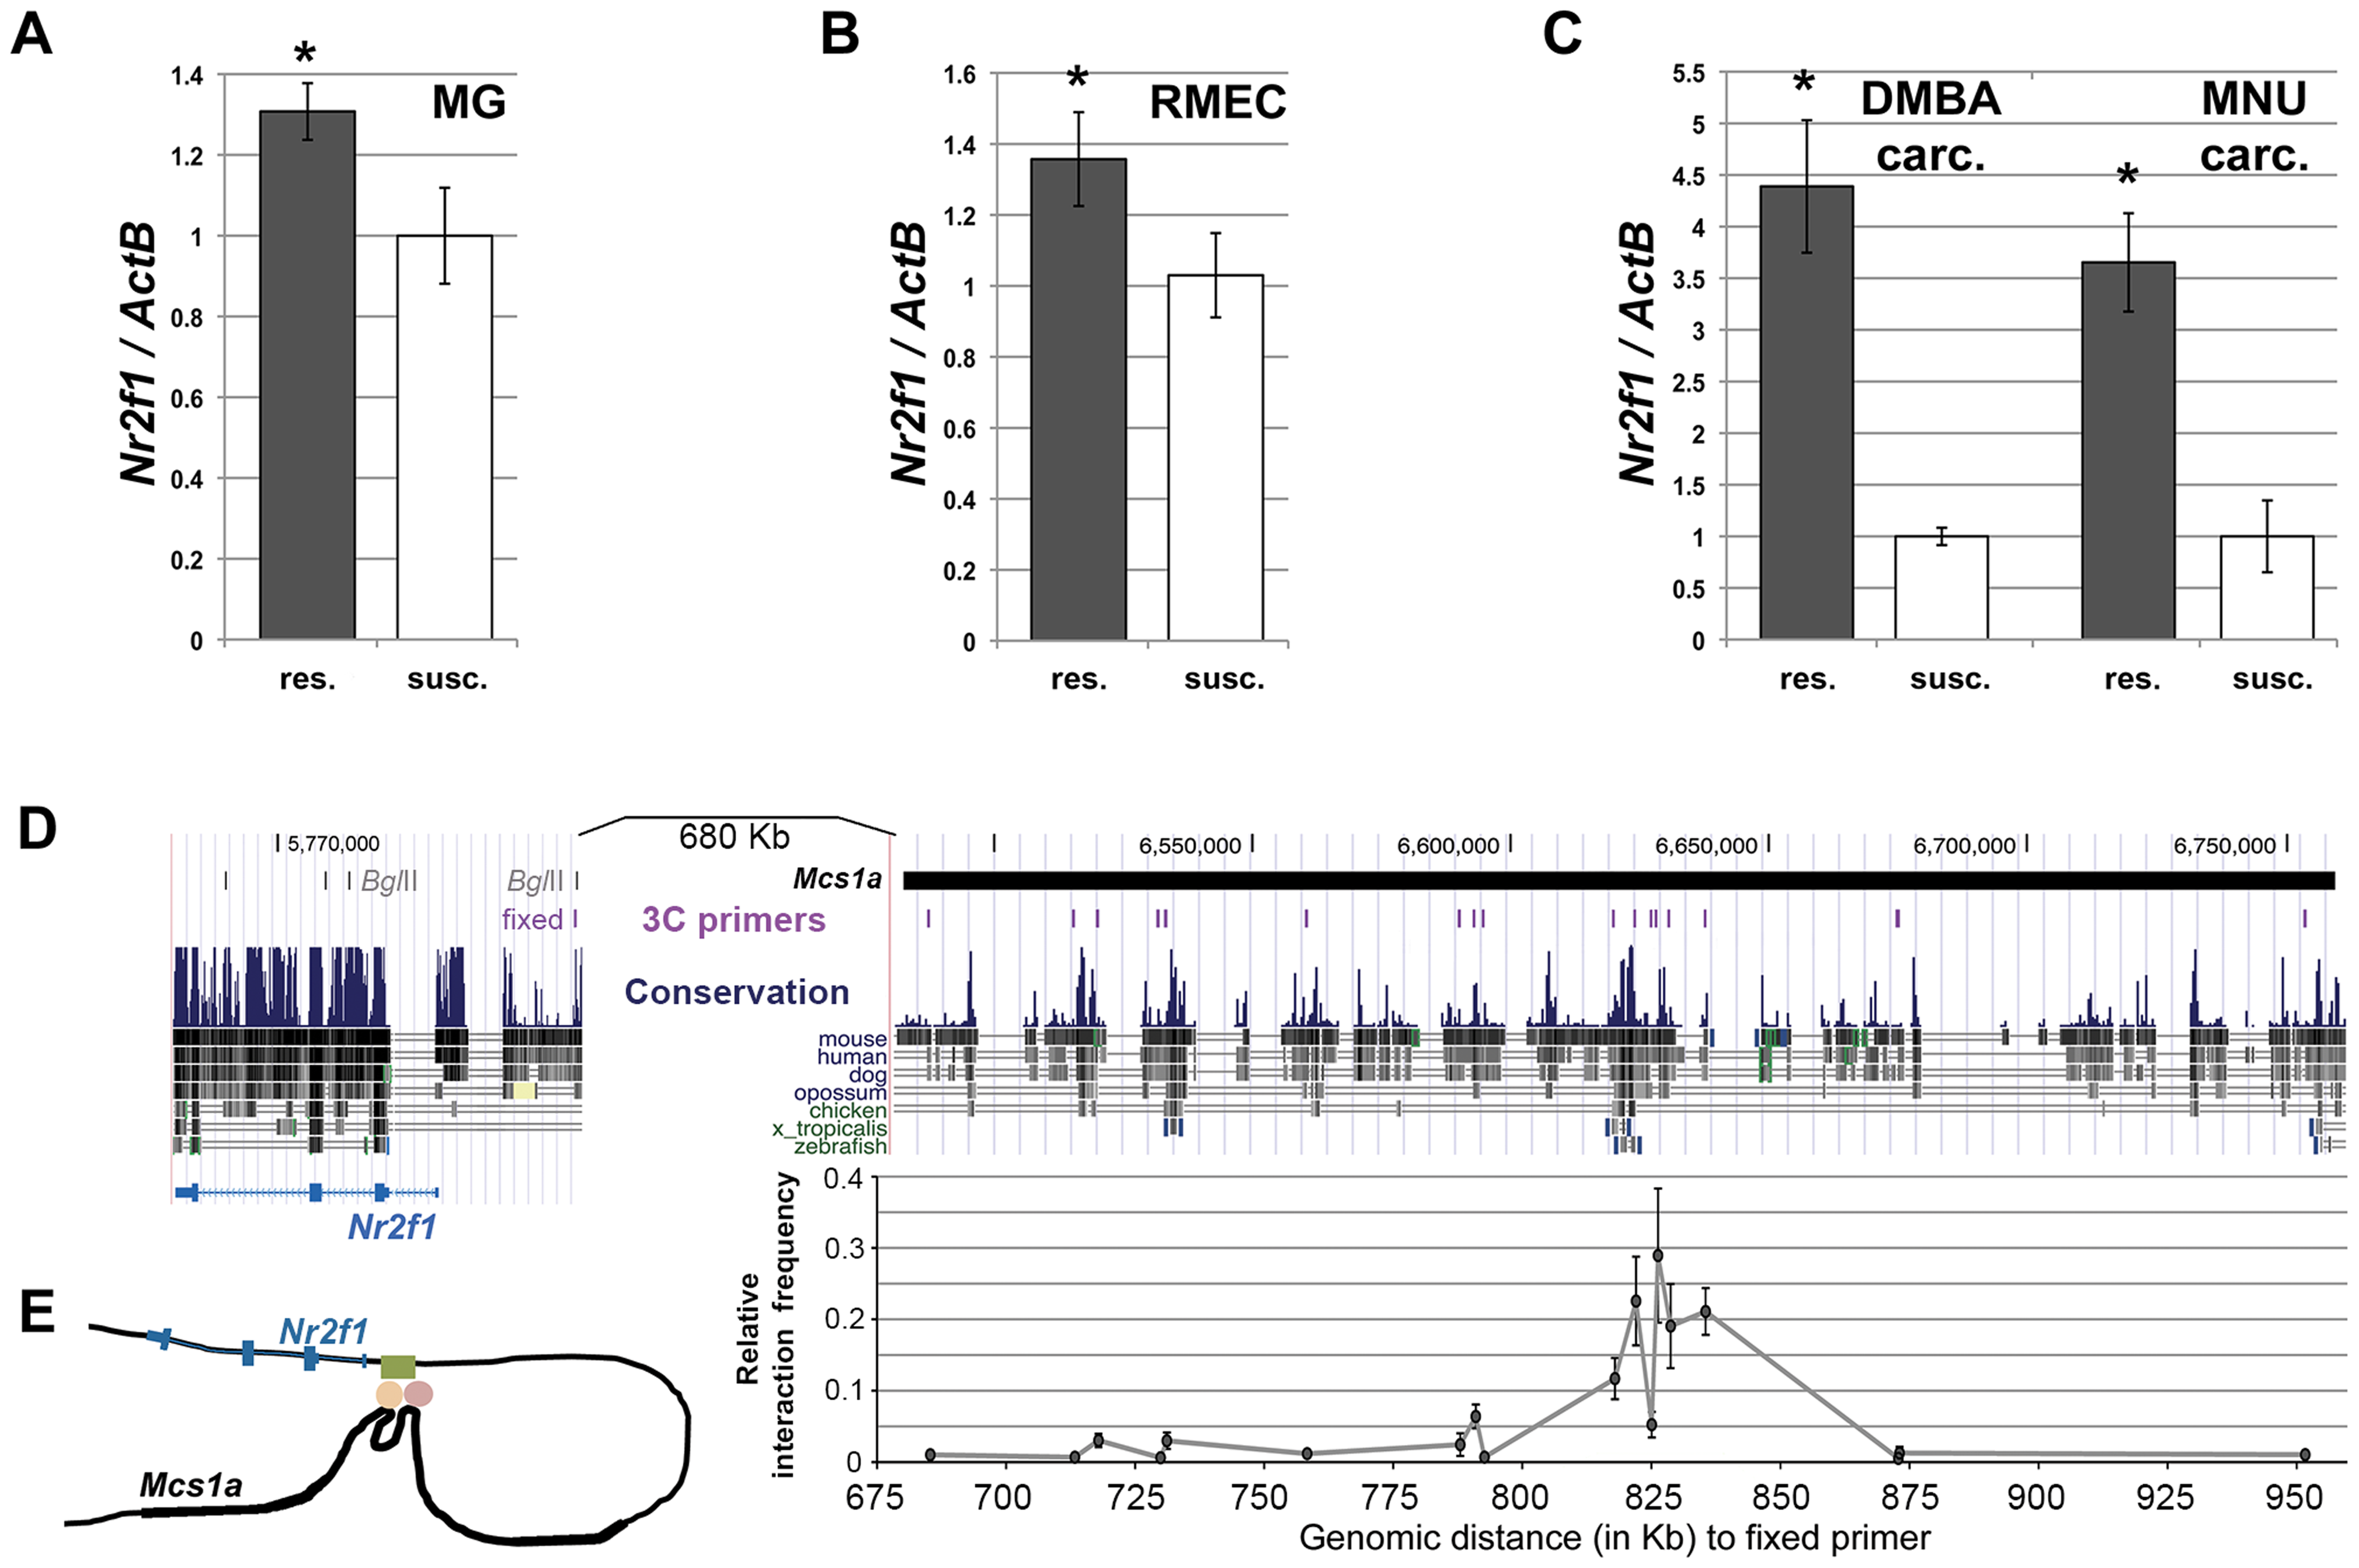 The non-protein coding <i>Mcs1a</i> resistance locus regulates transcript levels of <i>Nr2f1</i> in the mammary gland, mammary epithelium and mammary carcinomas.